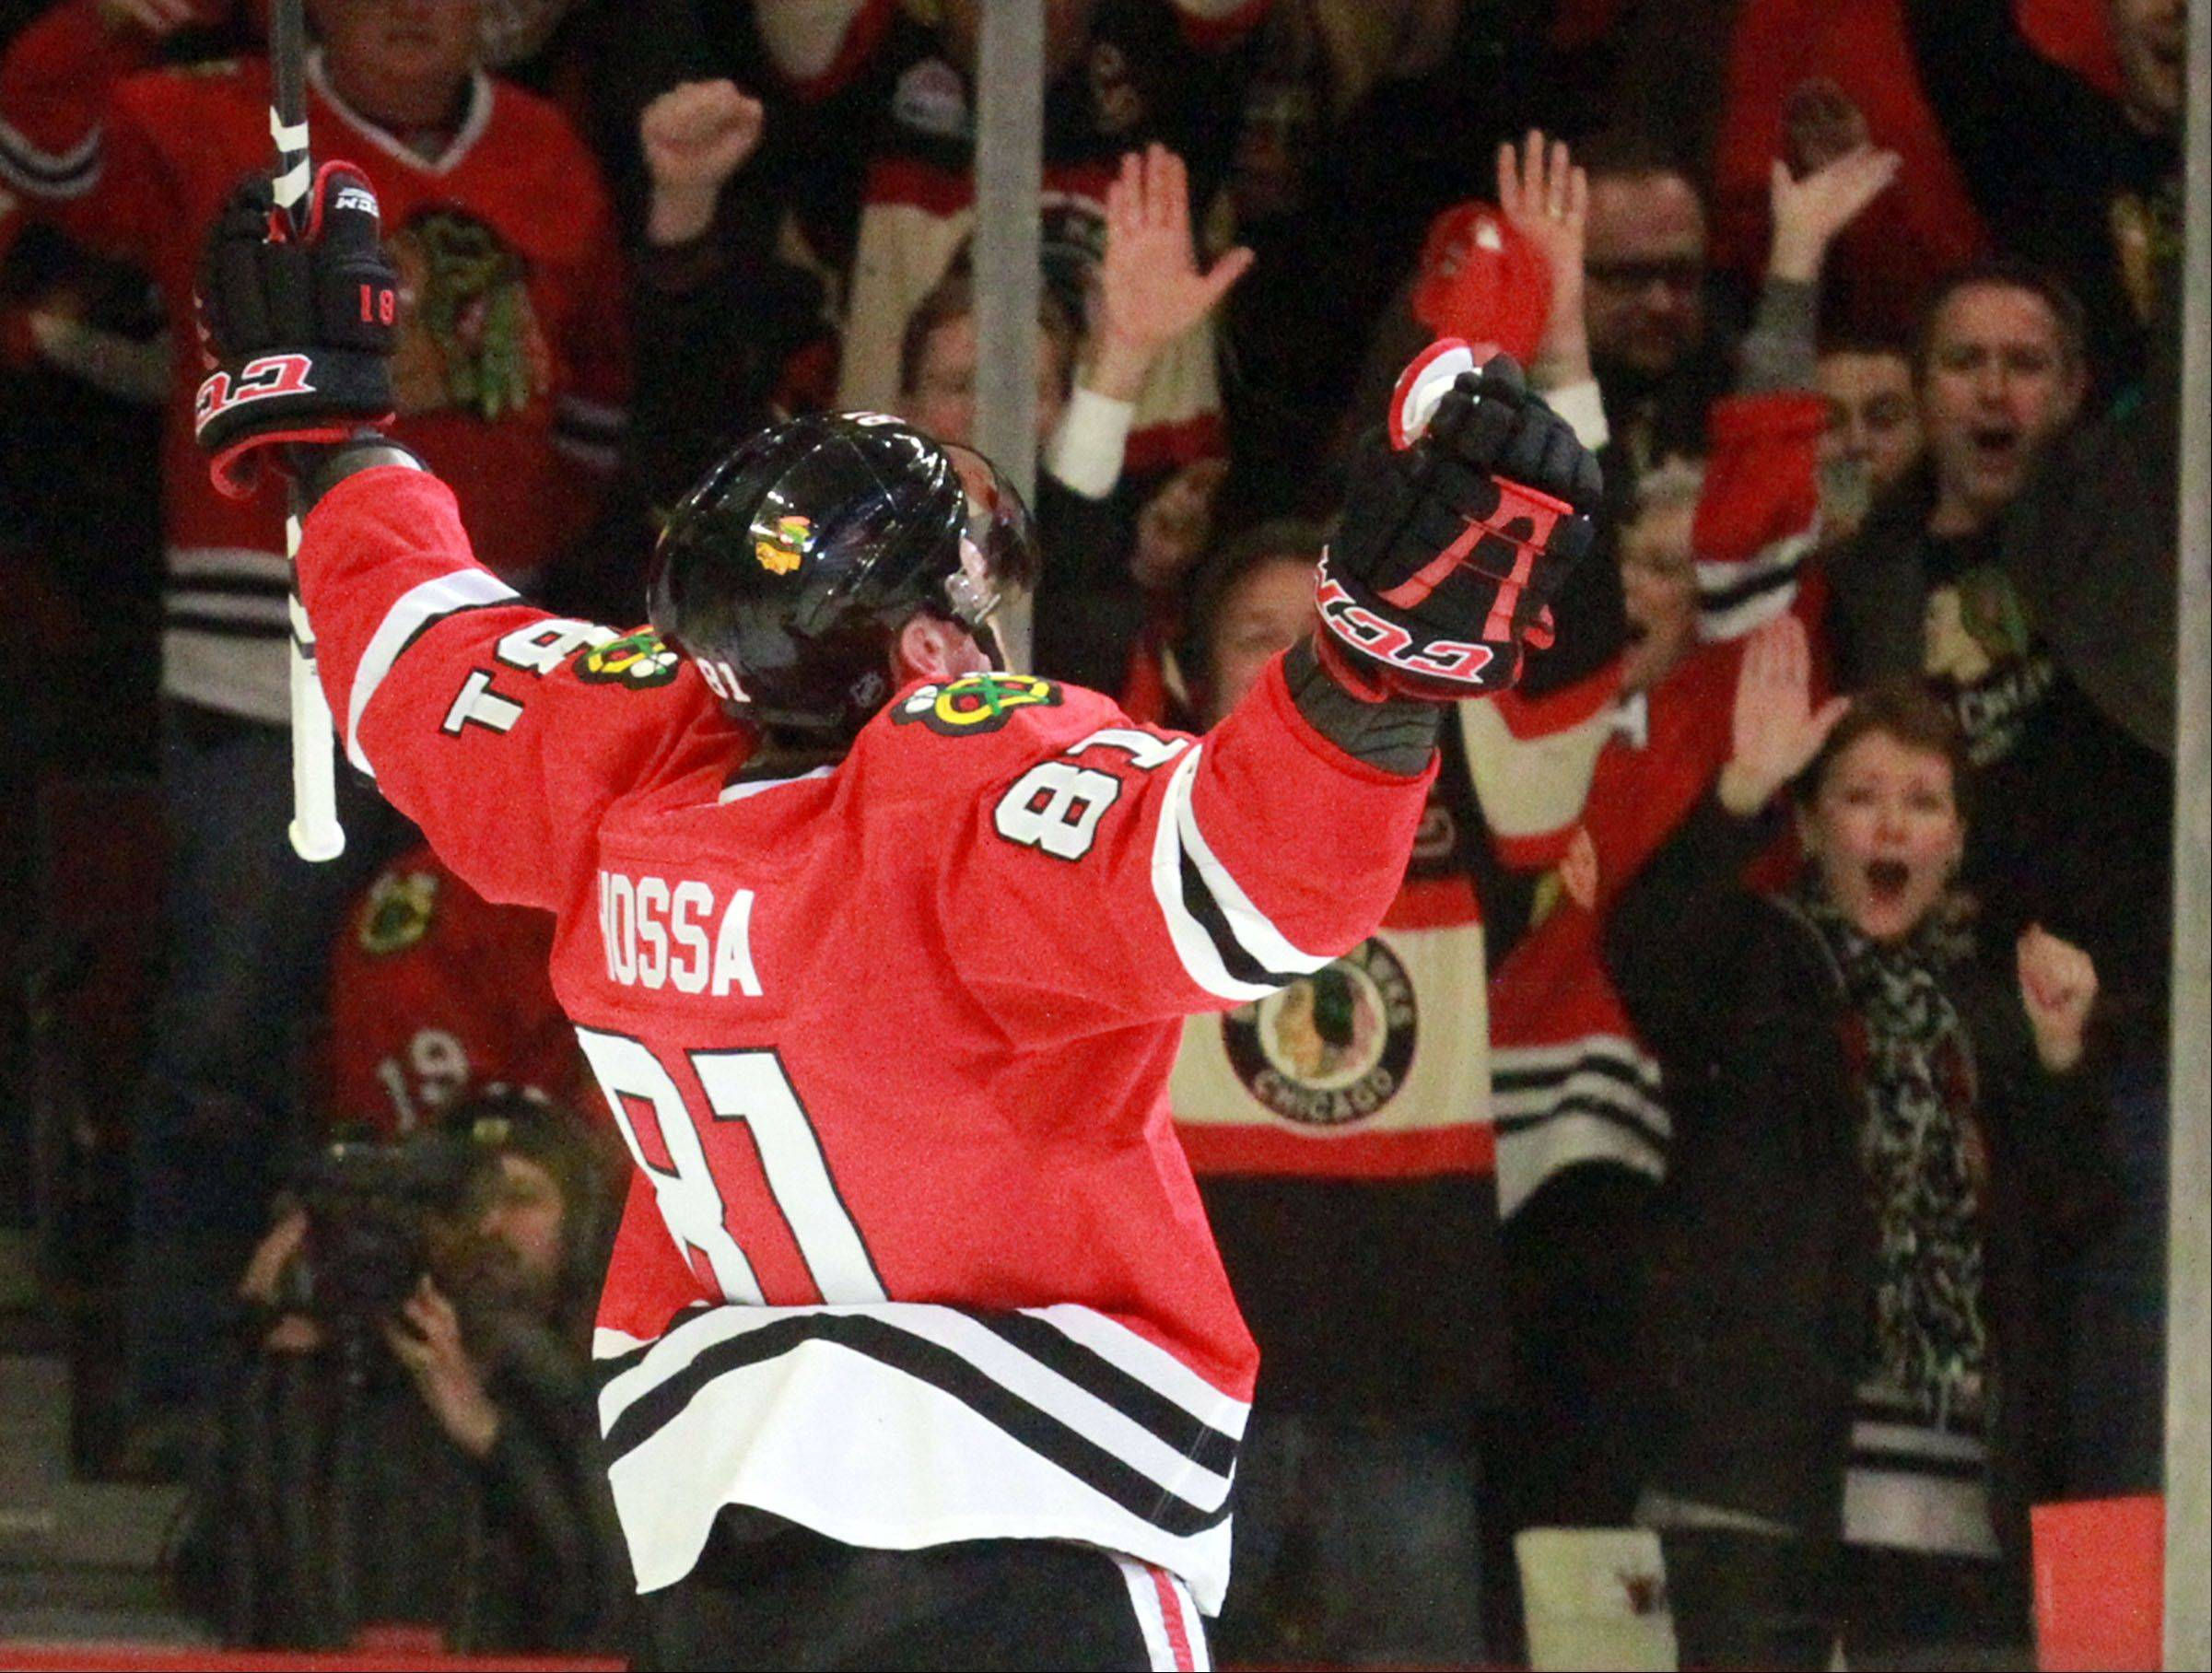 Chicago Blackhawks right wing Marian Hossa celebrates his second goal of the game.